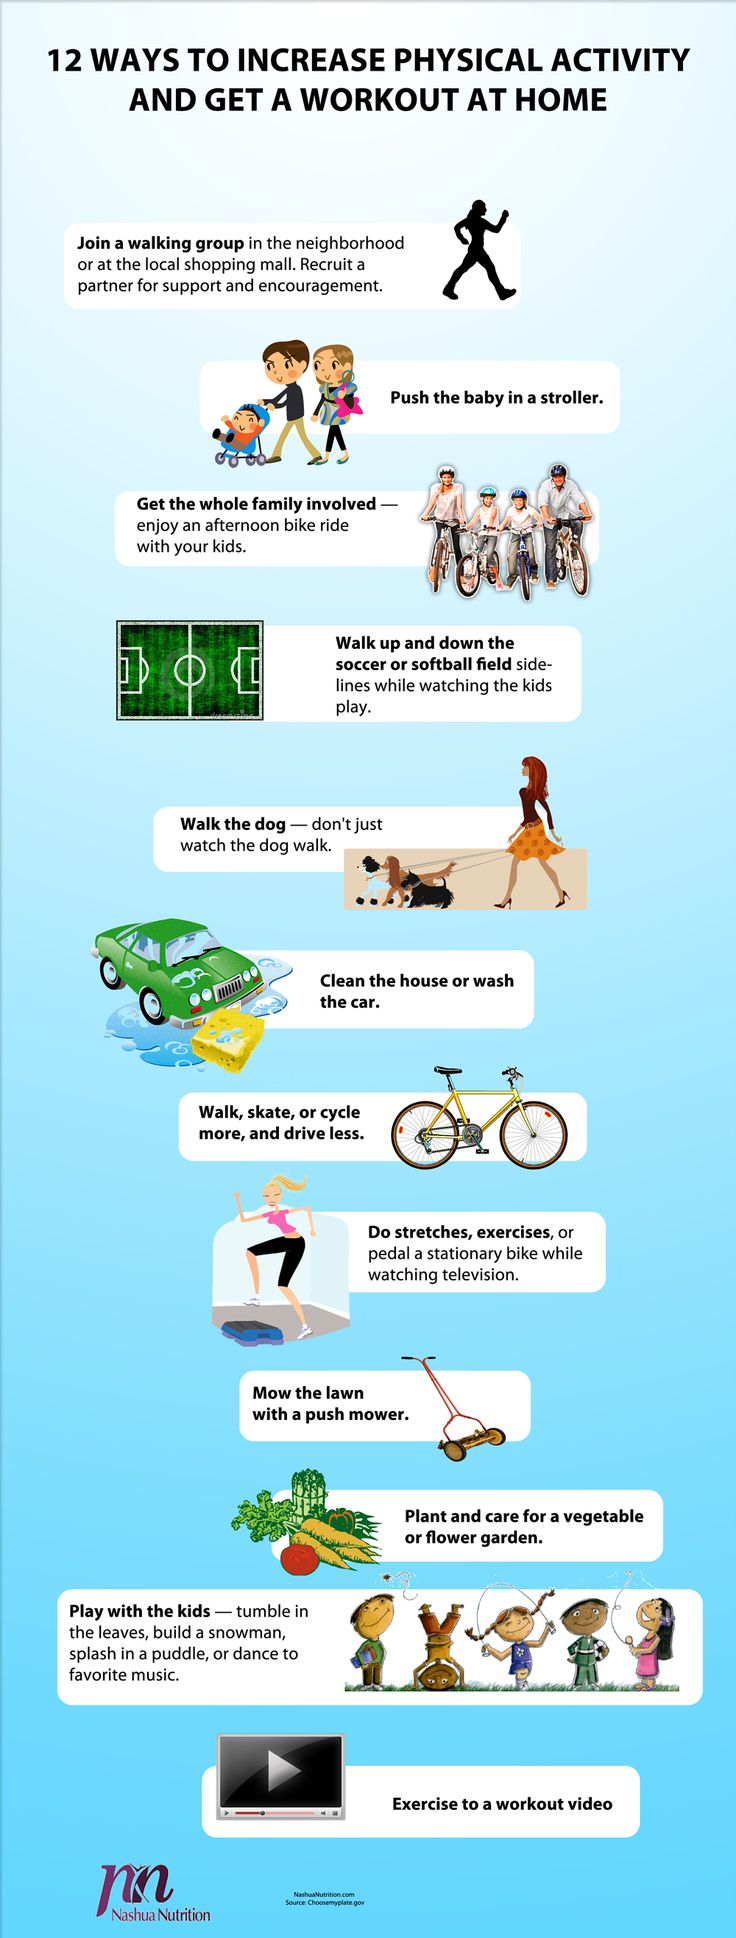 12 Ways to Get a Good Workout at Home – Infographic